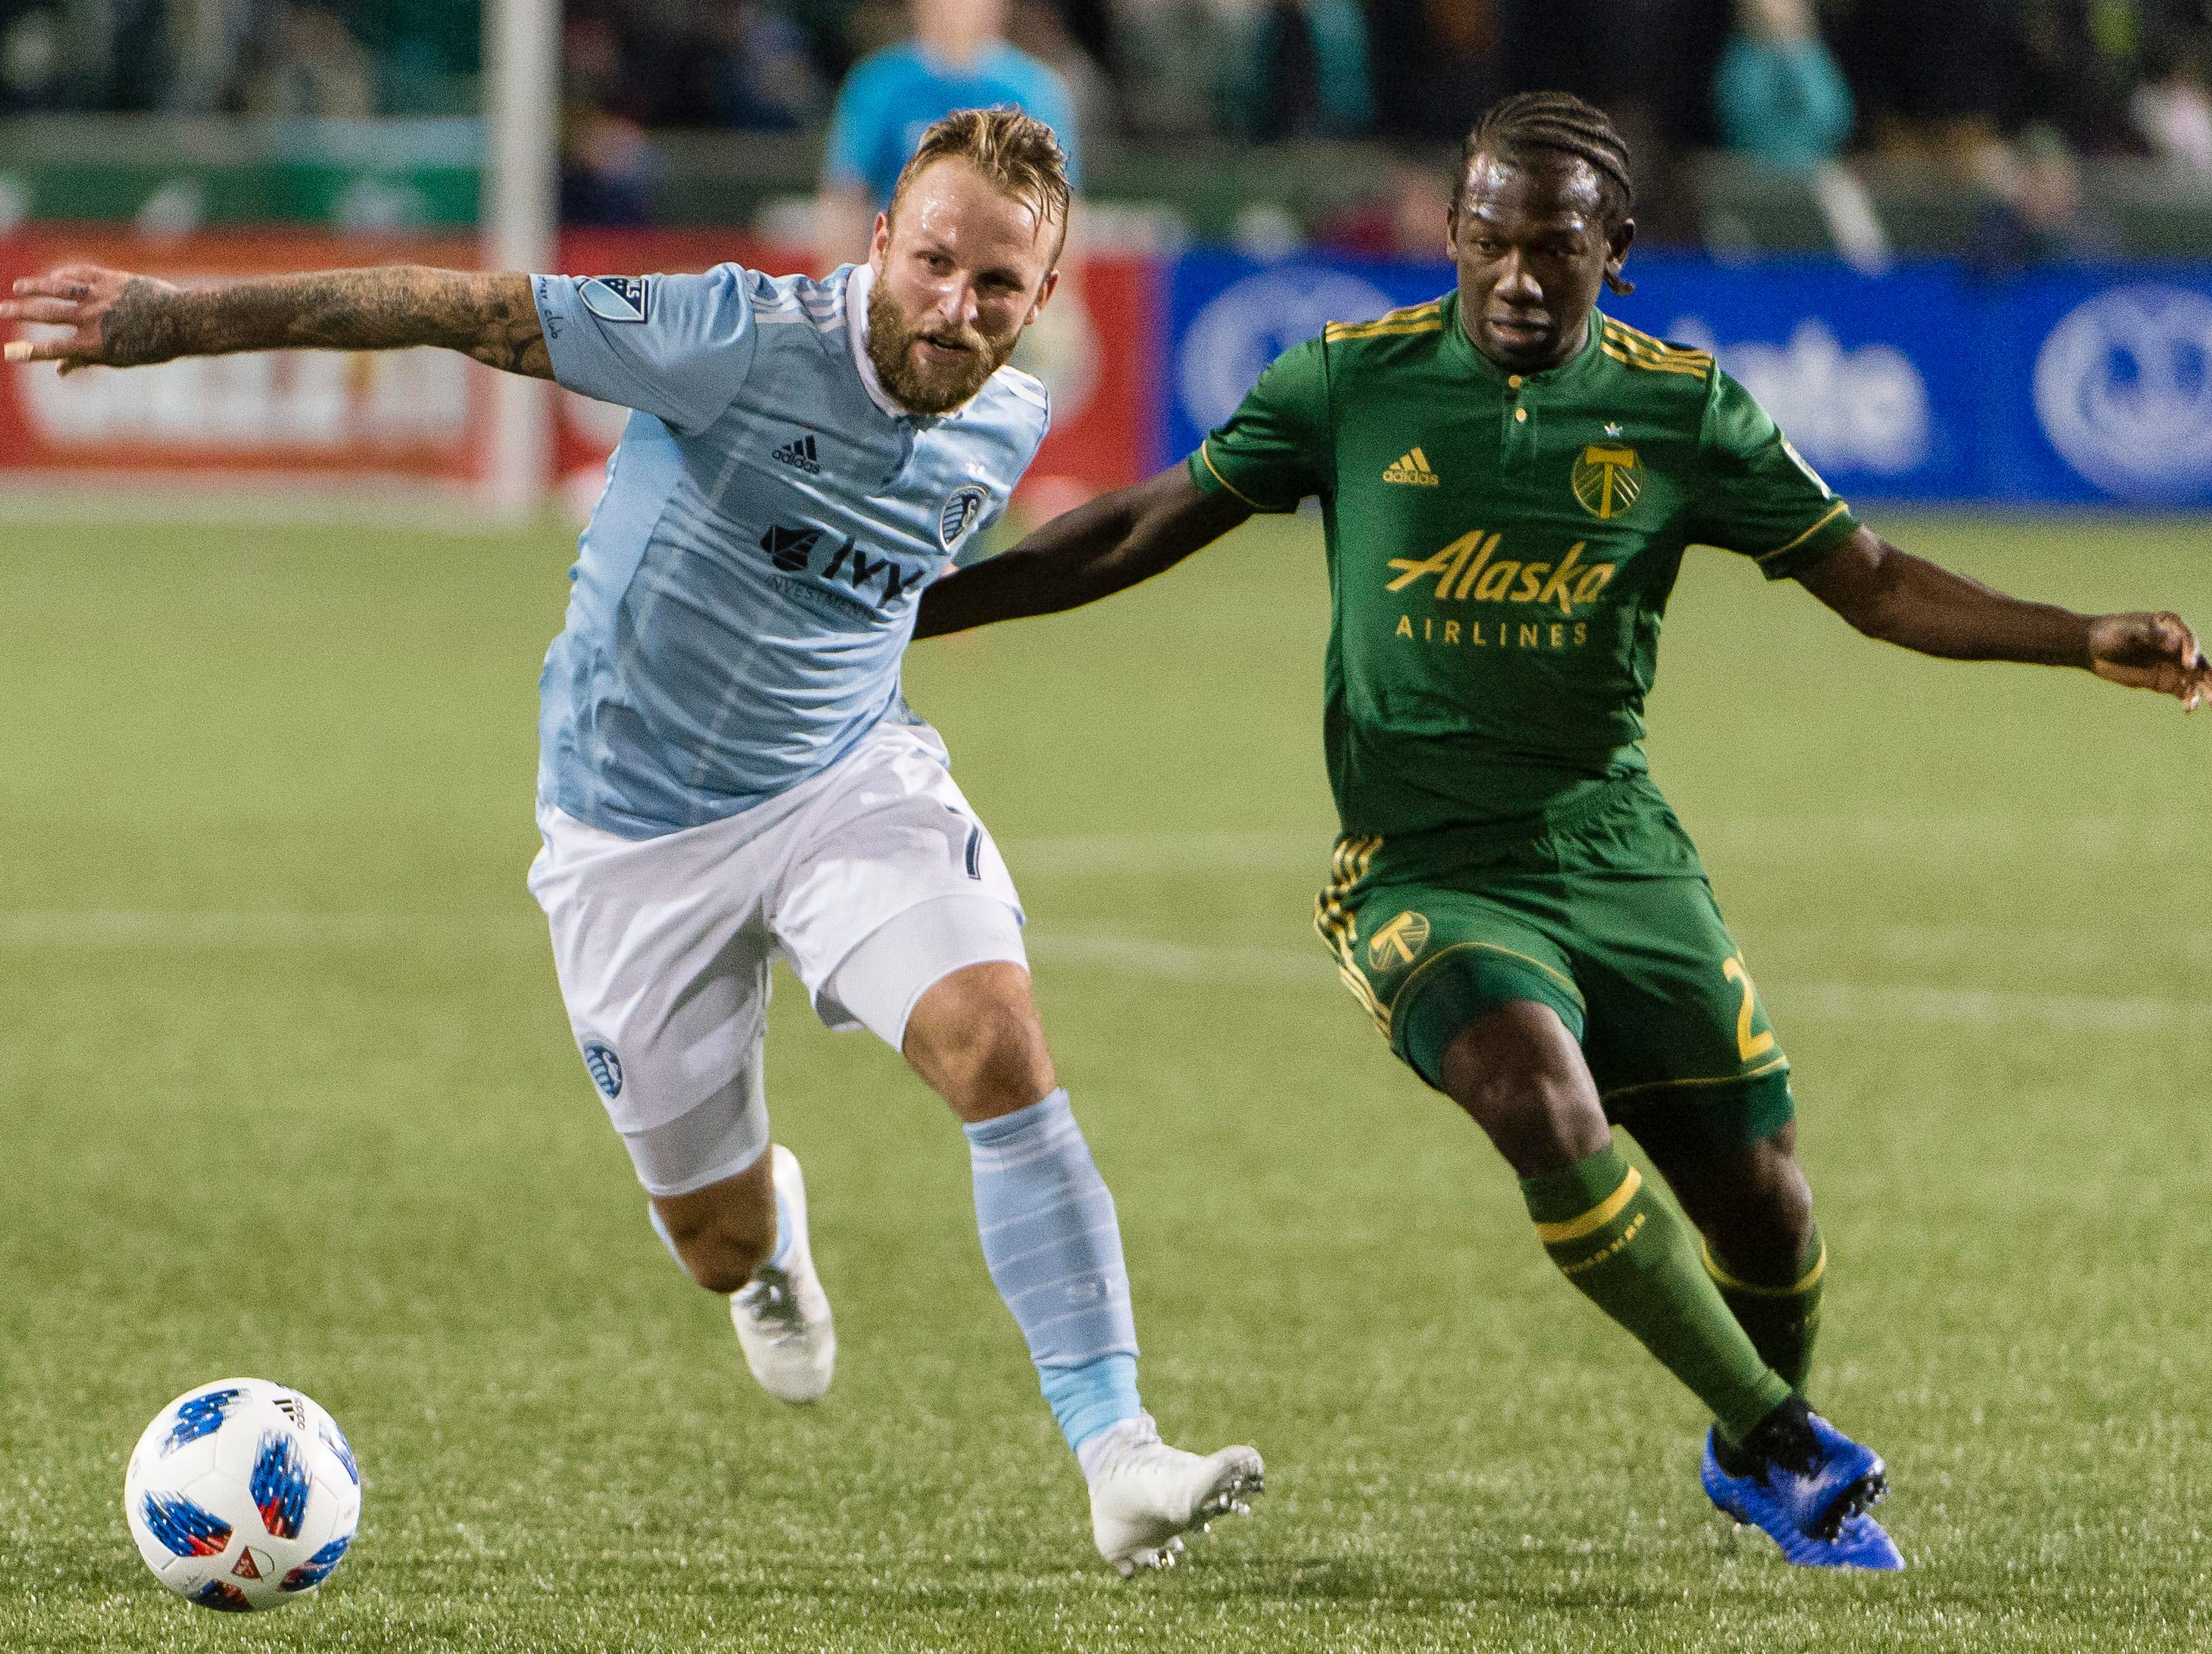 Nov 25, 2018; Portland, OR, USA; Sporting Kansas City forward Johnny Russell (7) controls a pass as he is guarded by Portland Timbers midfielder Diego Chara (21) during the second half in the first leg of the MLS Western Conference Championship at Providence Park. The game ended tied 0-0.  Mandatory Credit: Troy Wayrynen-USA TODAY Sports